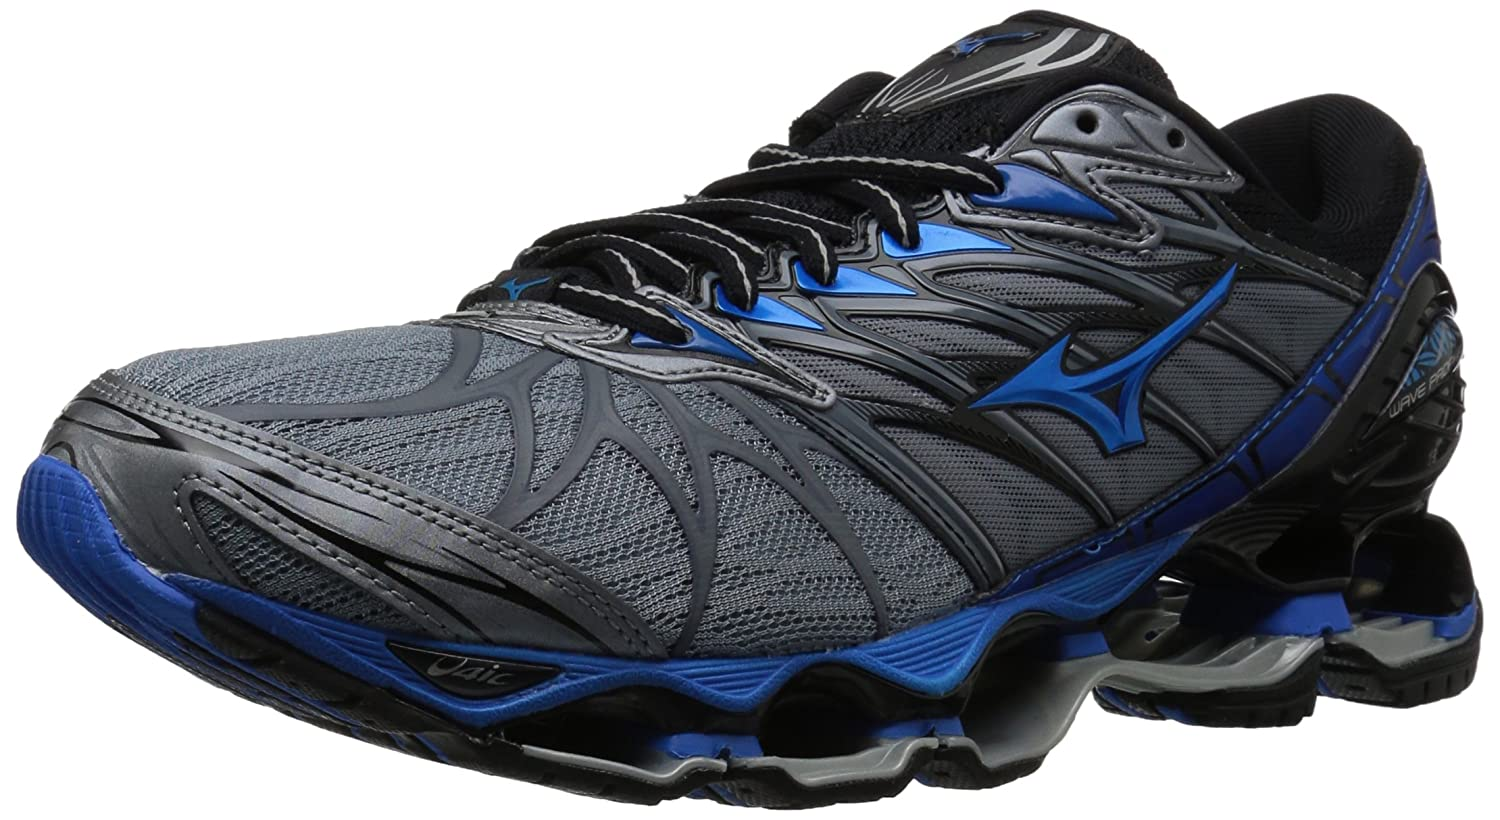 premium selection 5b8f0 76feb Amazon.com   Mizuno Wave Prophecy 7 Men s Running Shoes   Road Running